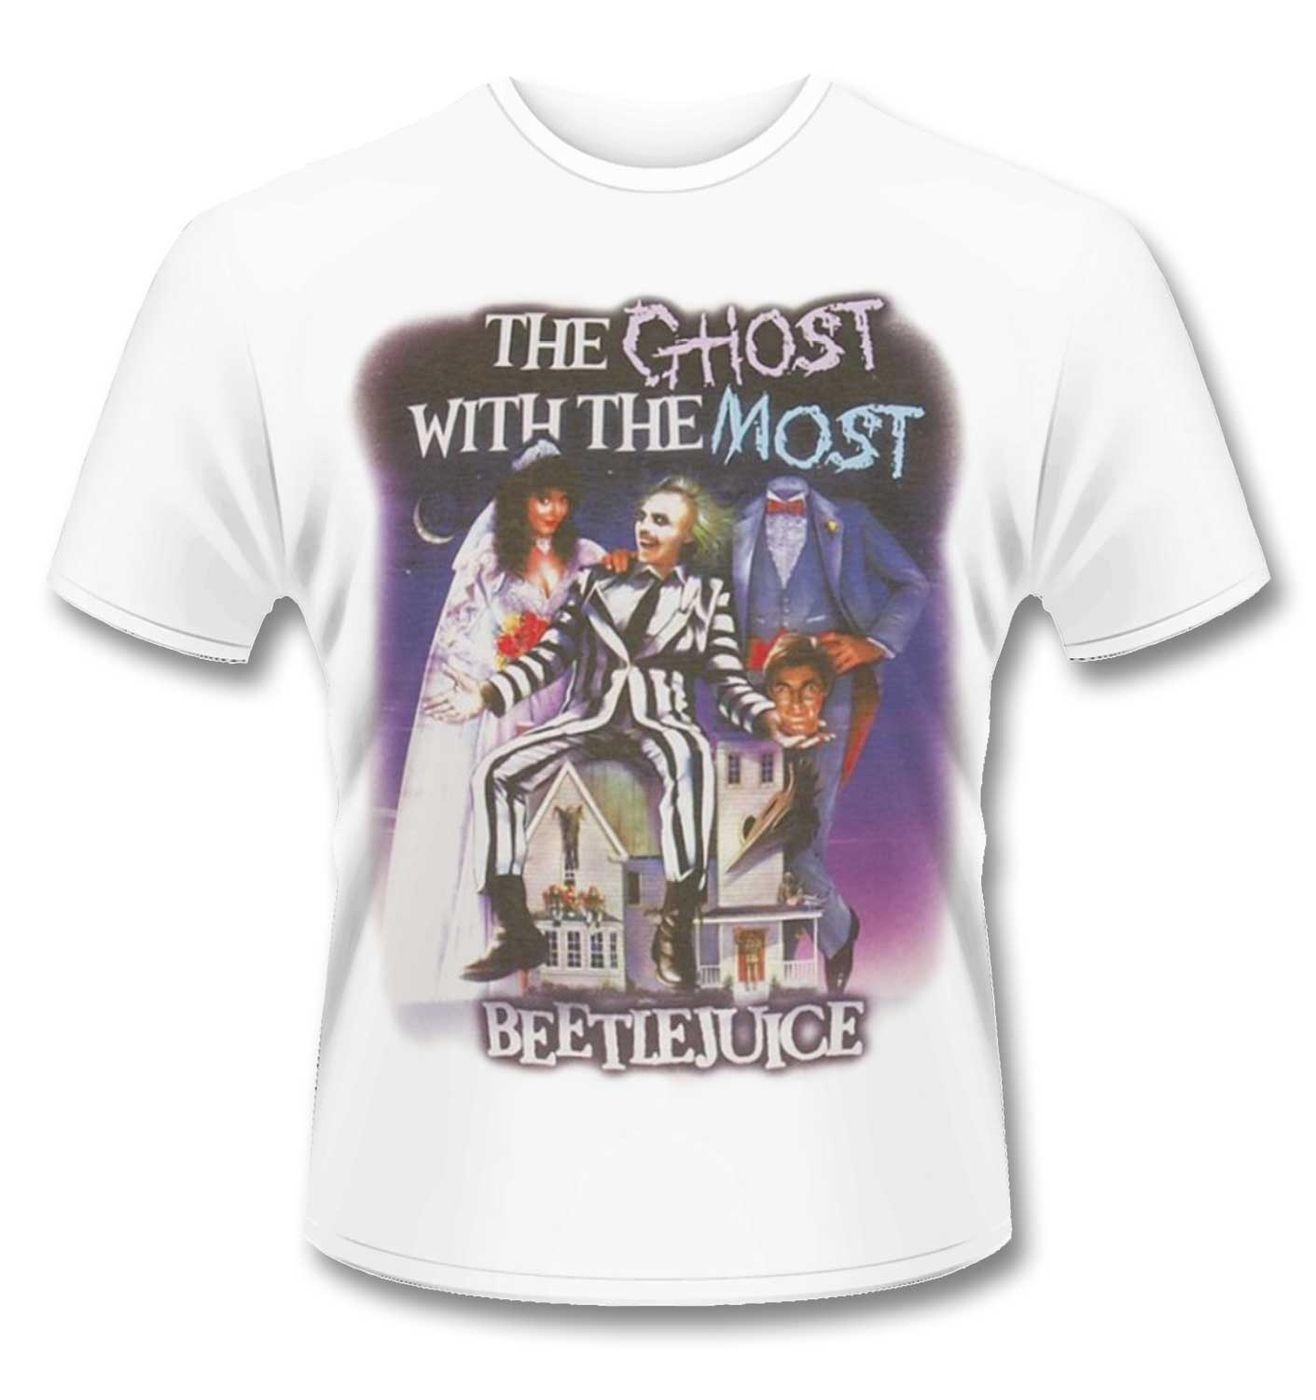 Official Beetlejuice Ghost With The Most t-shirt